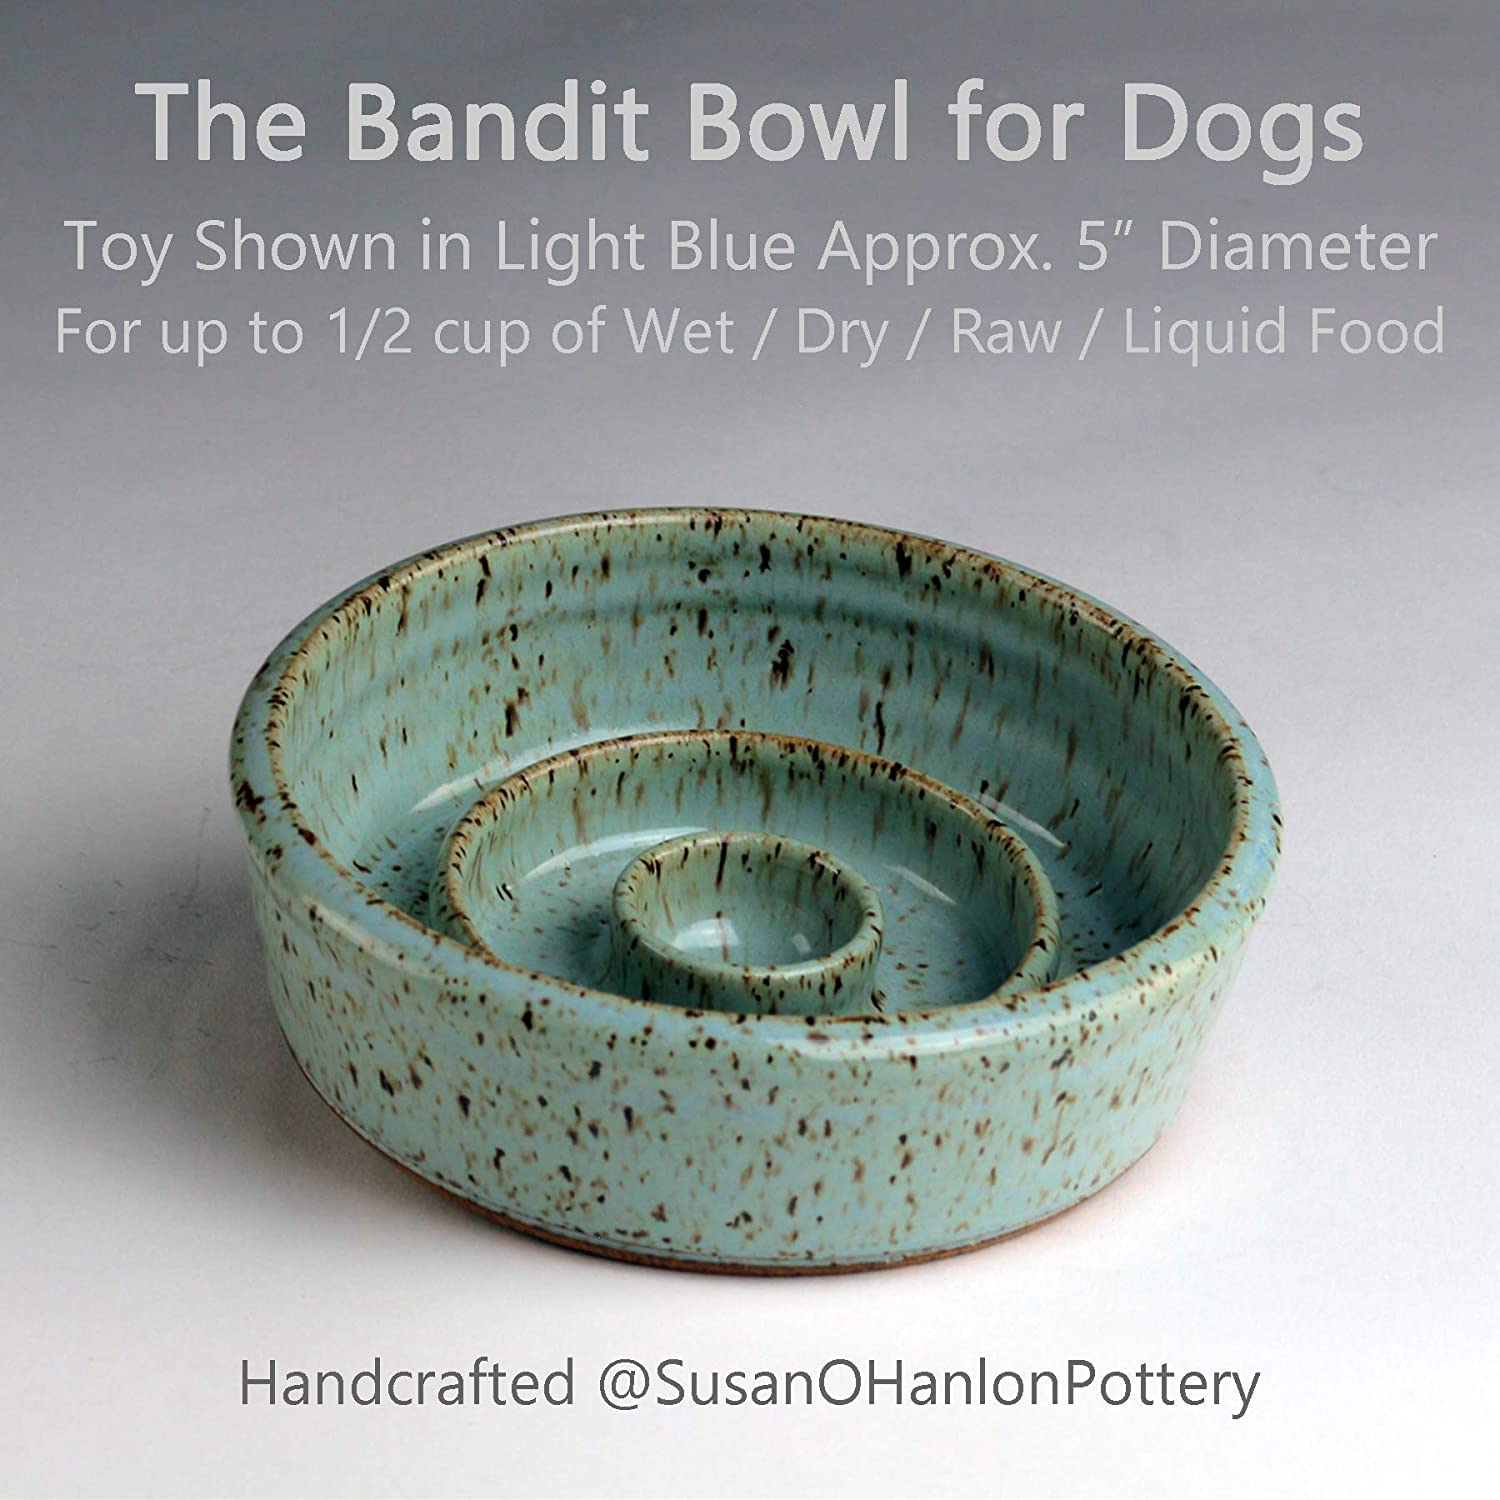 Ceramic Stoneware Handmade in the USA Bandit Bowl Slow Feeder Dog Bowl TOY in BLACK